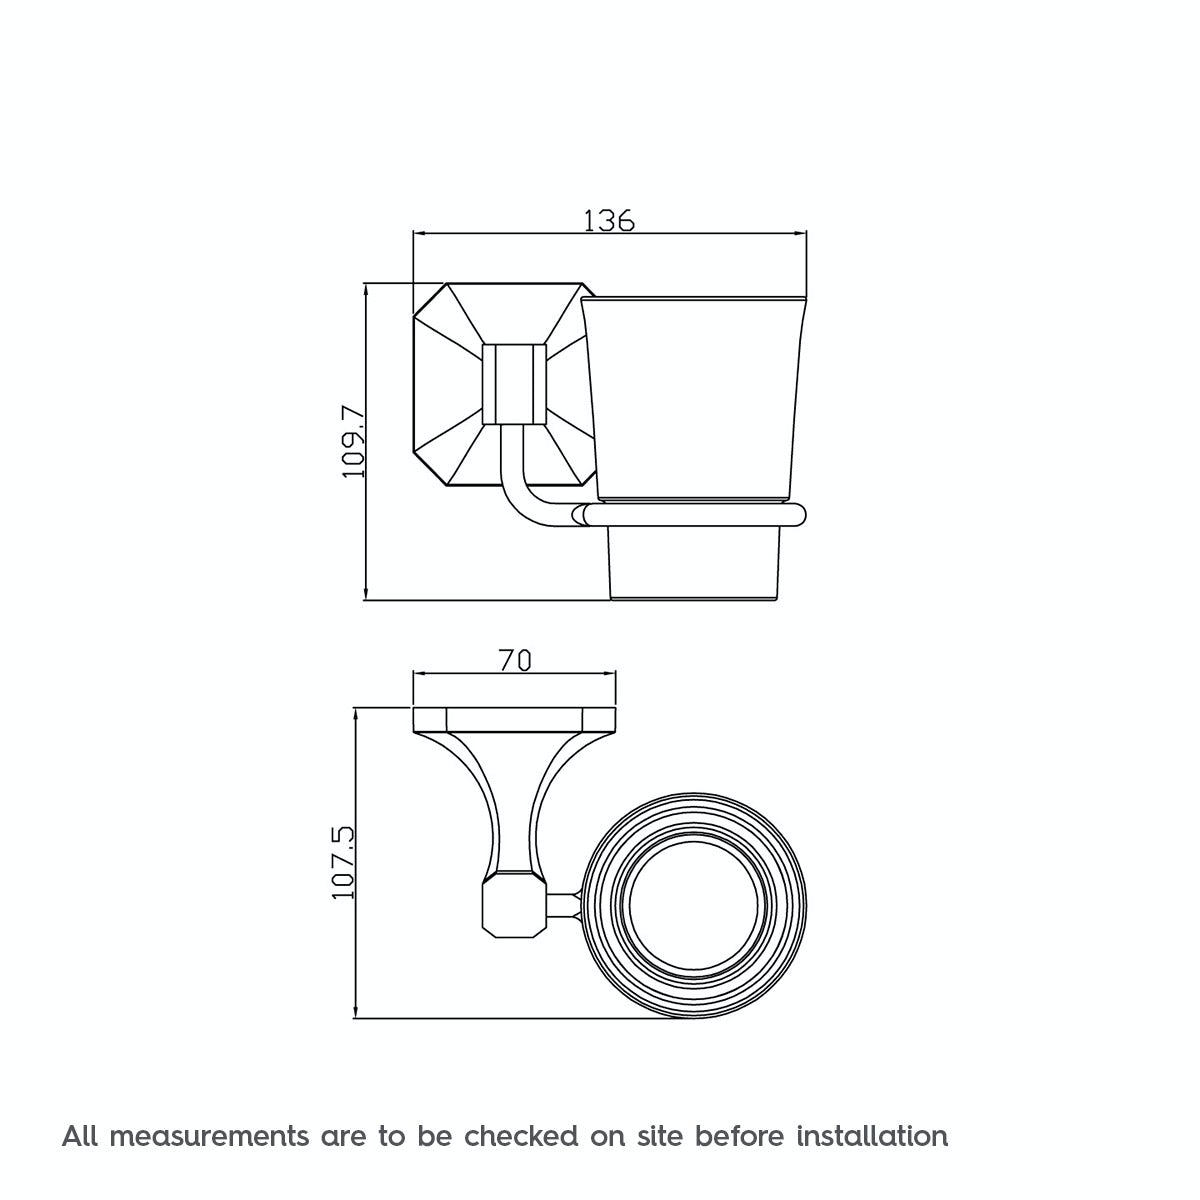 Dimensions for The Bath Co. Camberley ceramic tumbler and holder